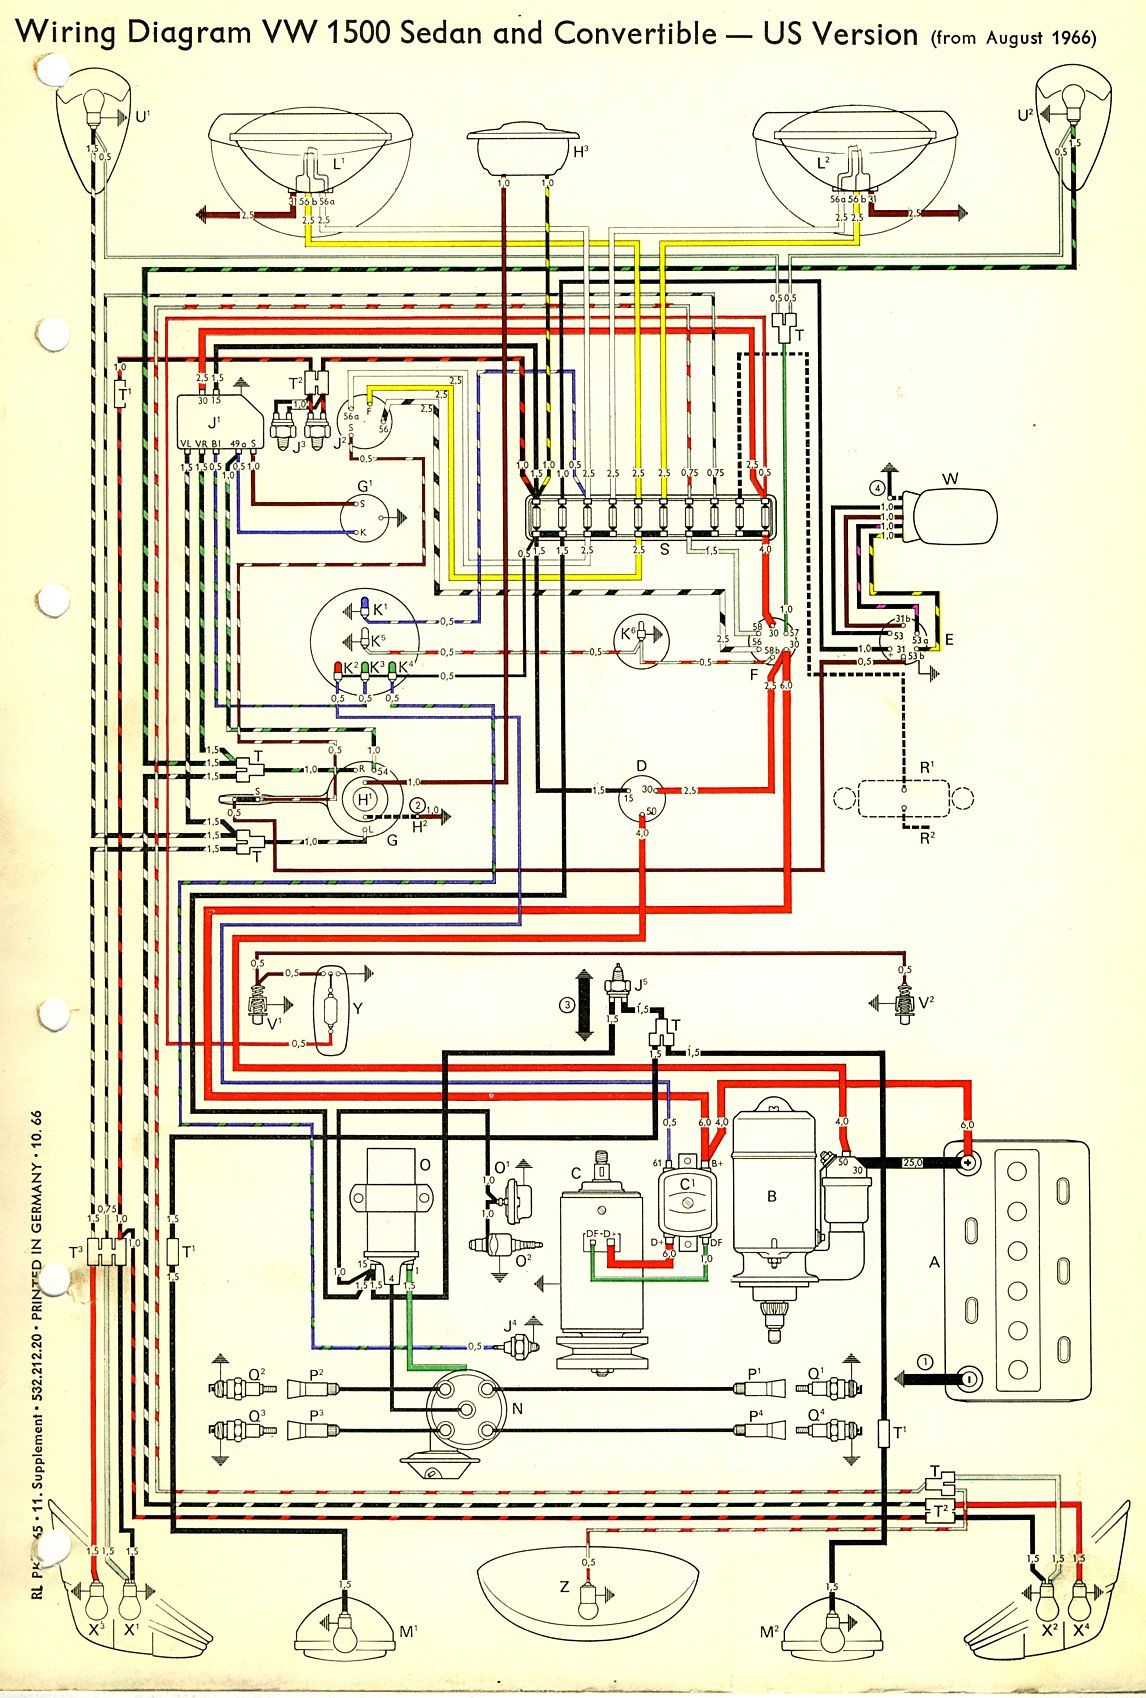 1adf990c0efb617c789fdd21338448b0 1967 beetle wiring diagram (usa) thegoldenbug com best 1967 vw 1971 vw bus wiring diagram at mifinder.co